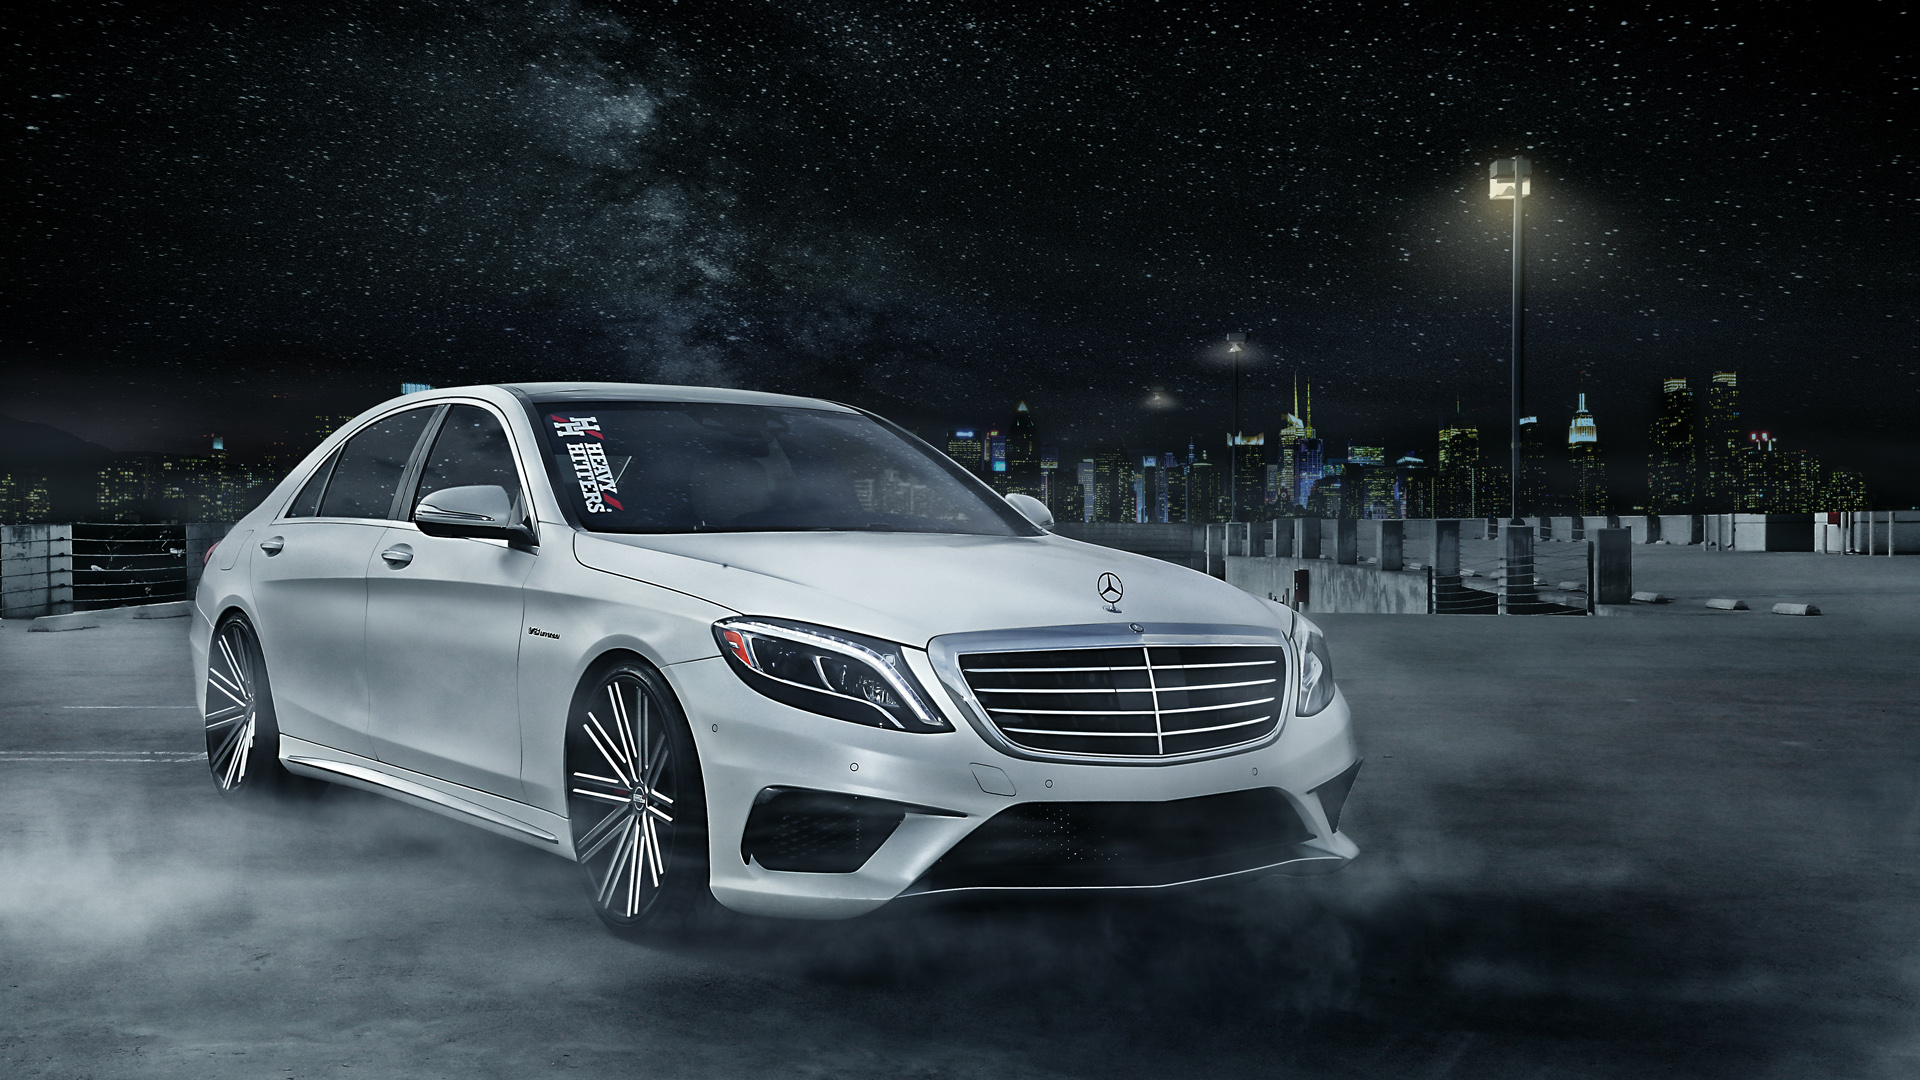 2015 Mbenz S63 Amg Sedan Hh11 Heavy Hitter Wheels